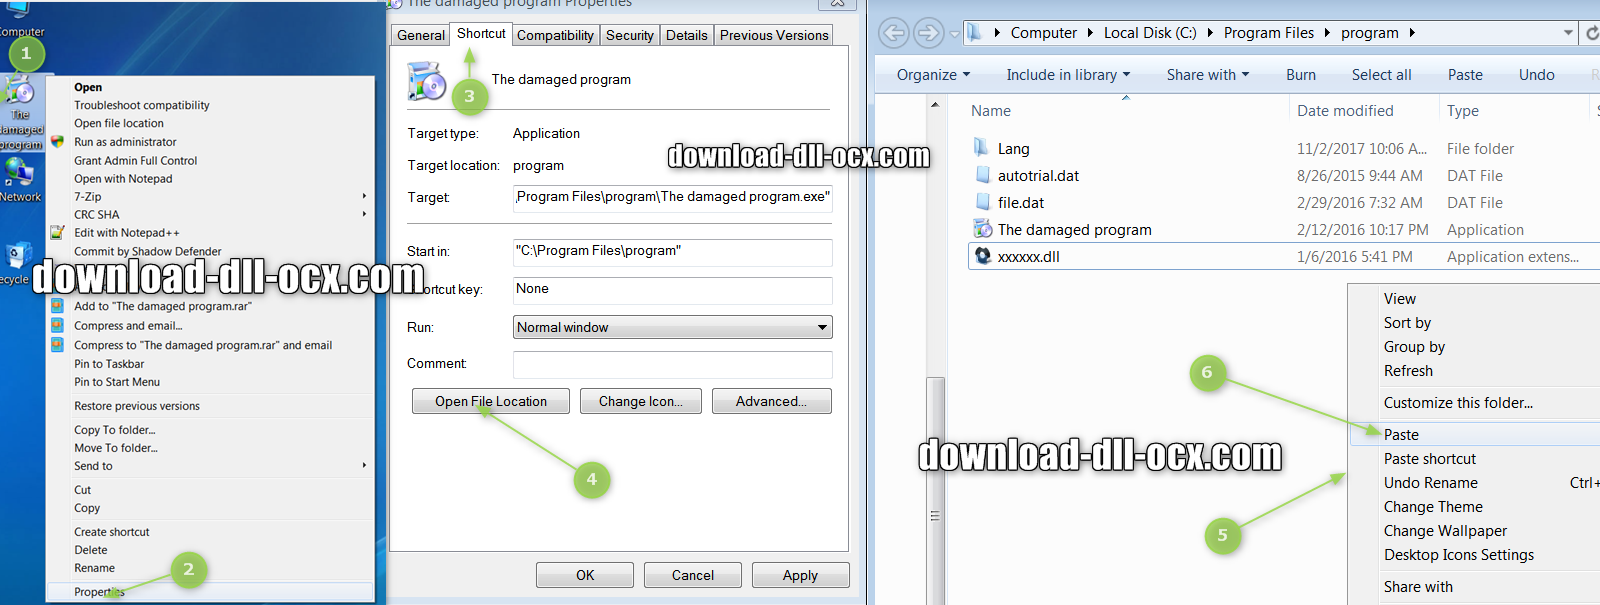 how to install Localedata_euro.dll file? for fix missing